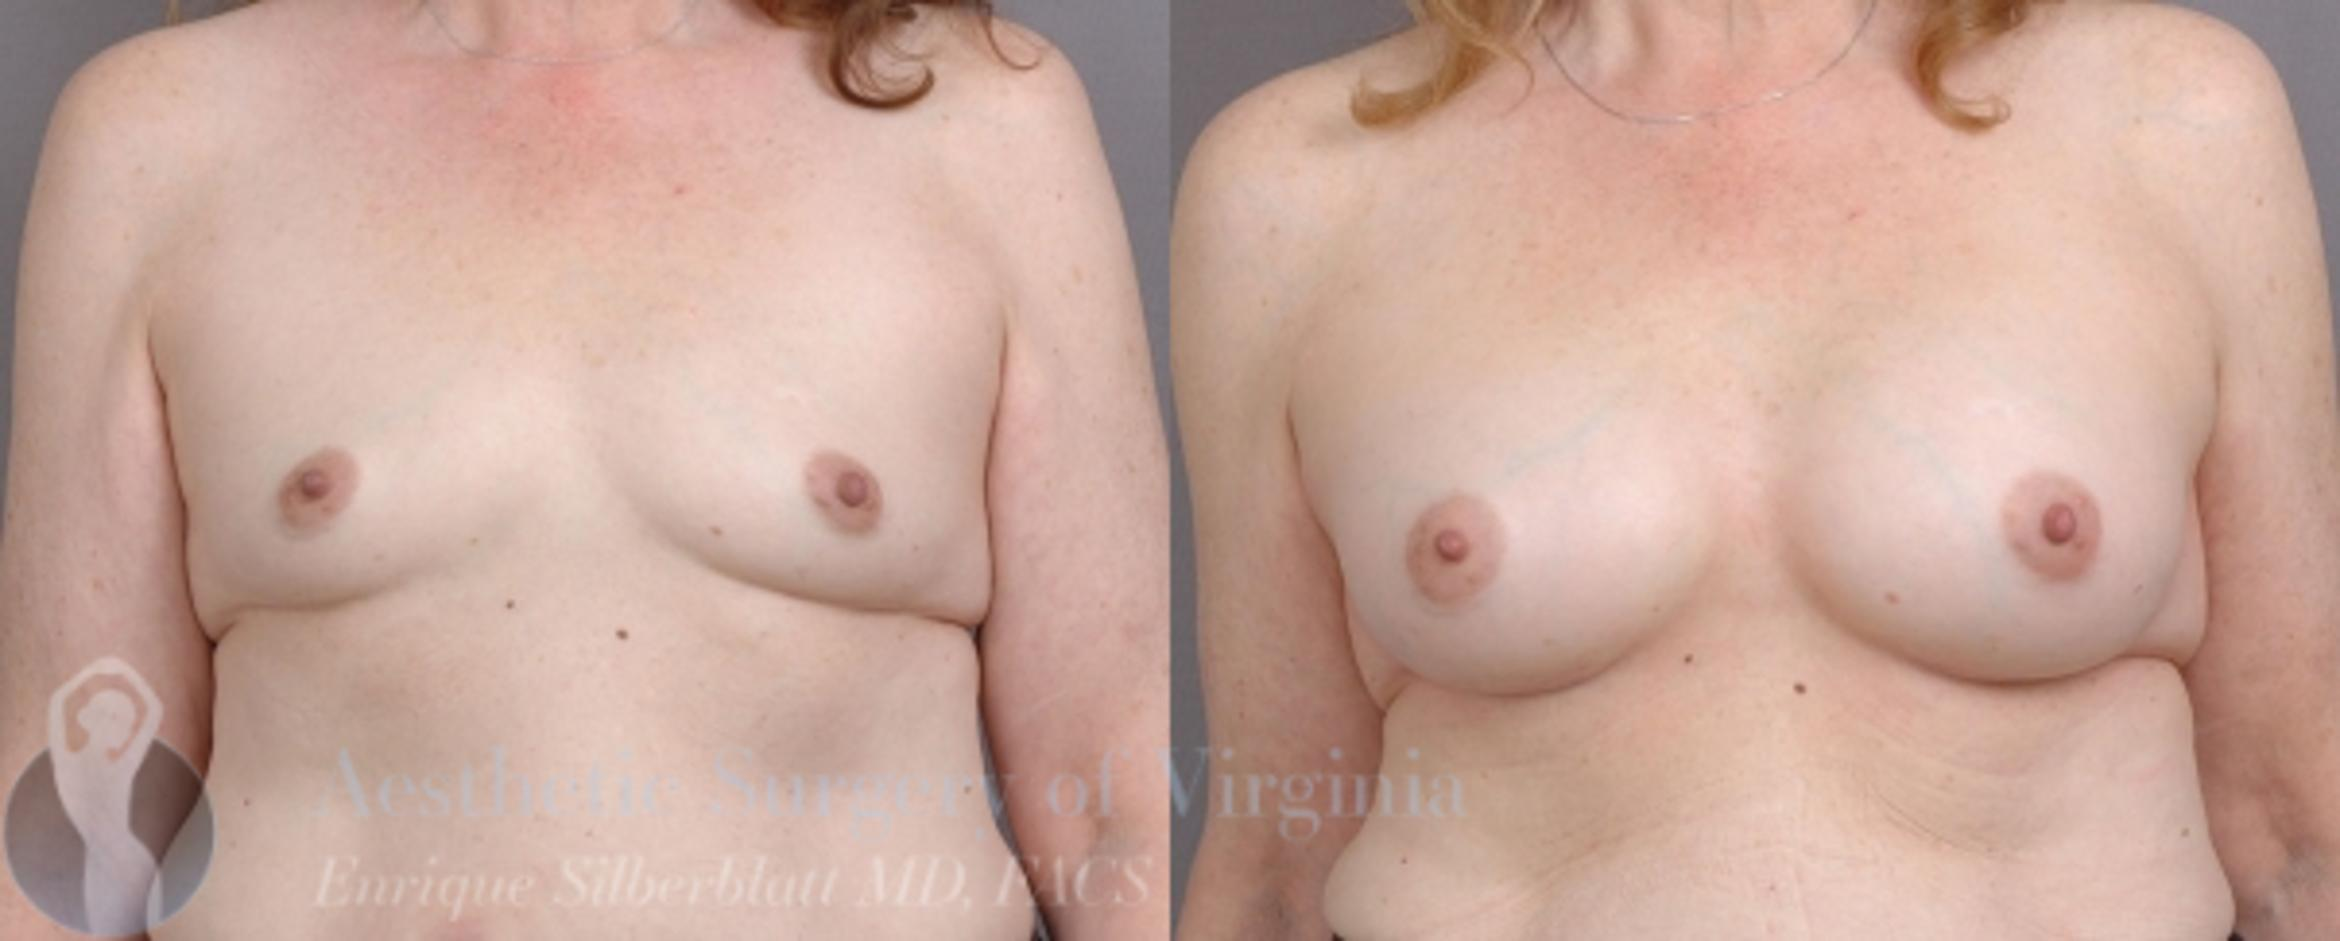 Breast Augmentation Case 16 Before & After View #1 | Roanoke, VA | Aesthetic Surgery of Virginia: Enrique Silberblatt, MD